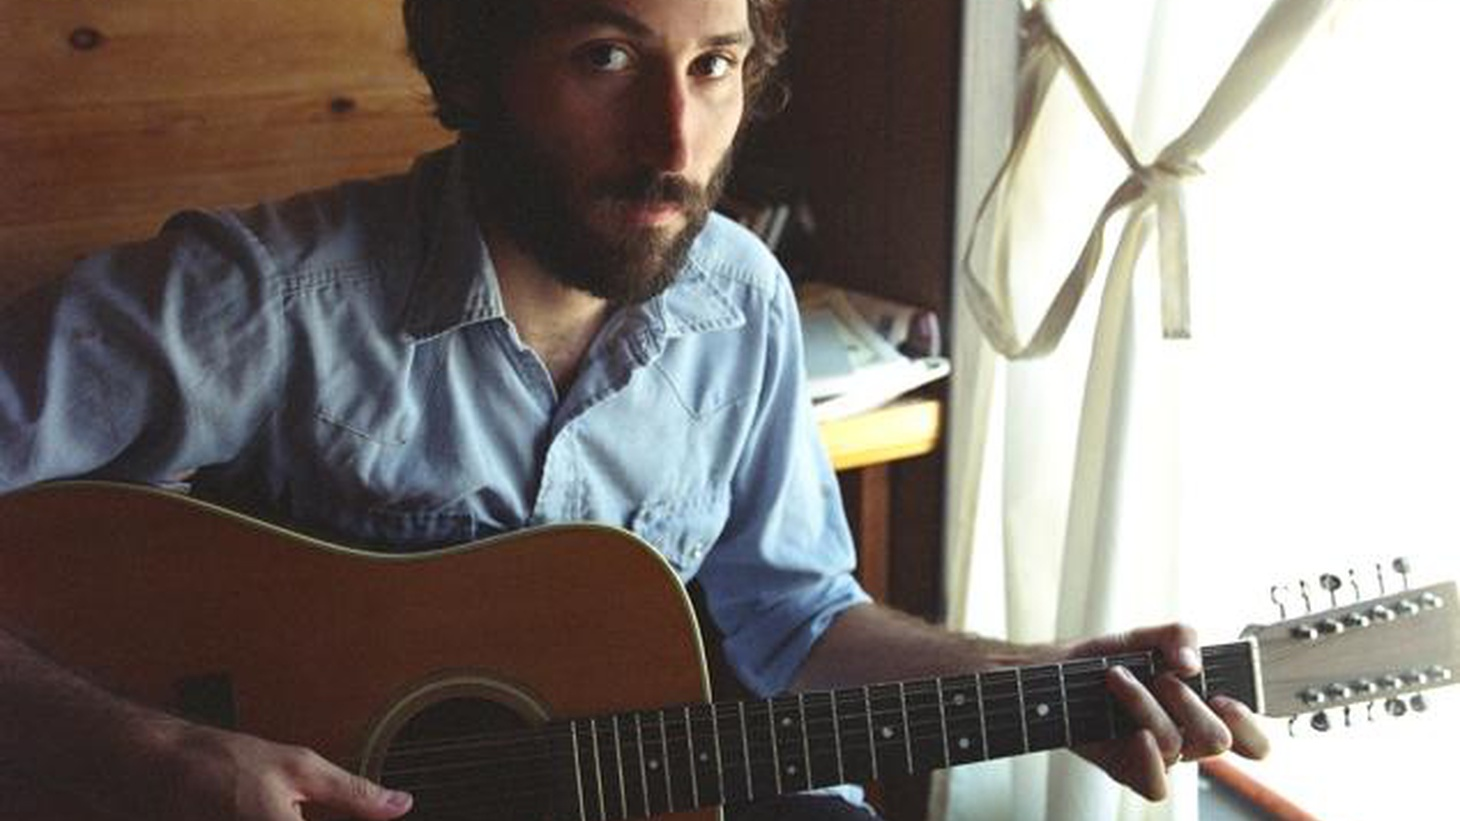 Singer/songwriter Matt Costa decided on a bigger, more mystic, sound for his new album, enlisting some of Scotland's most illustrious musicians to bring it to life.